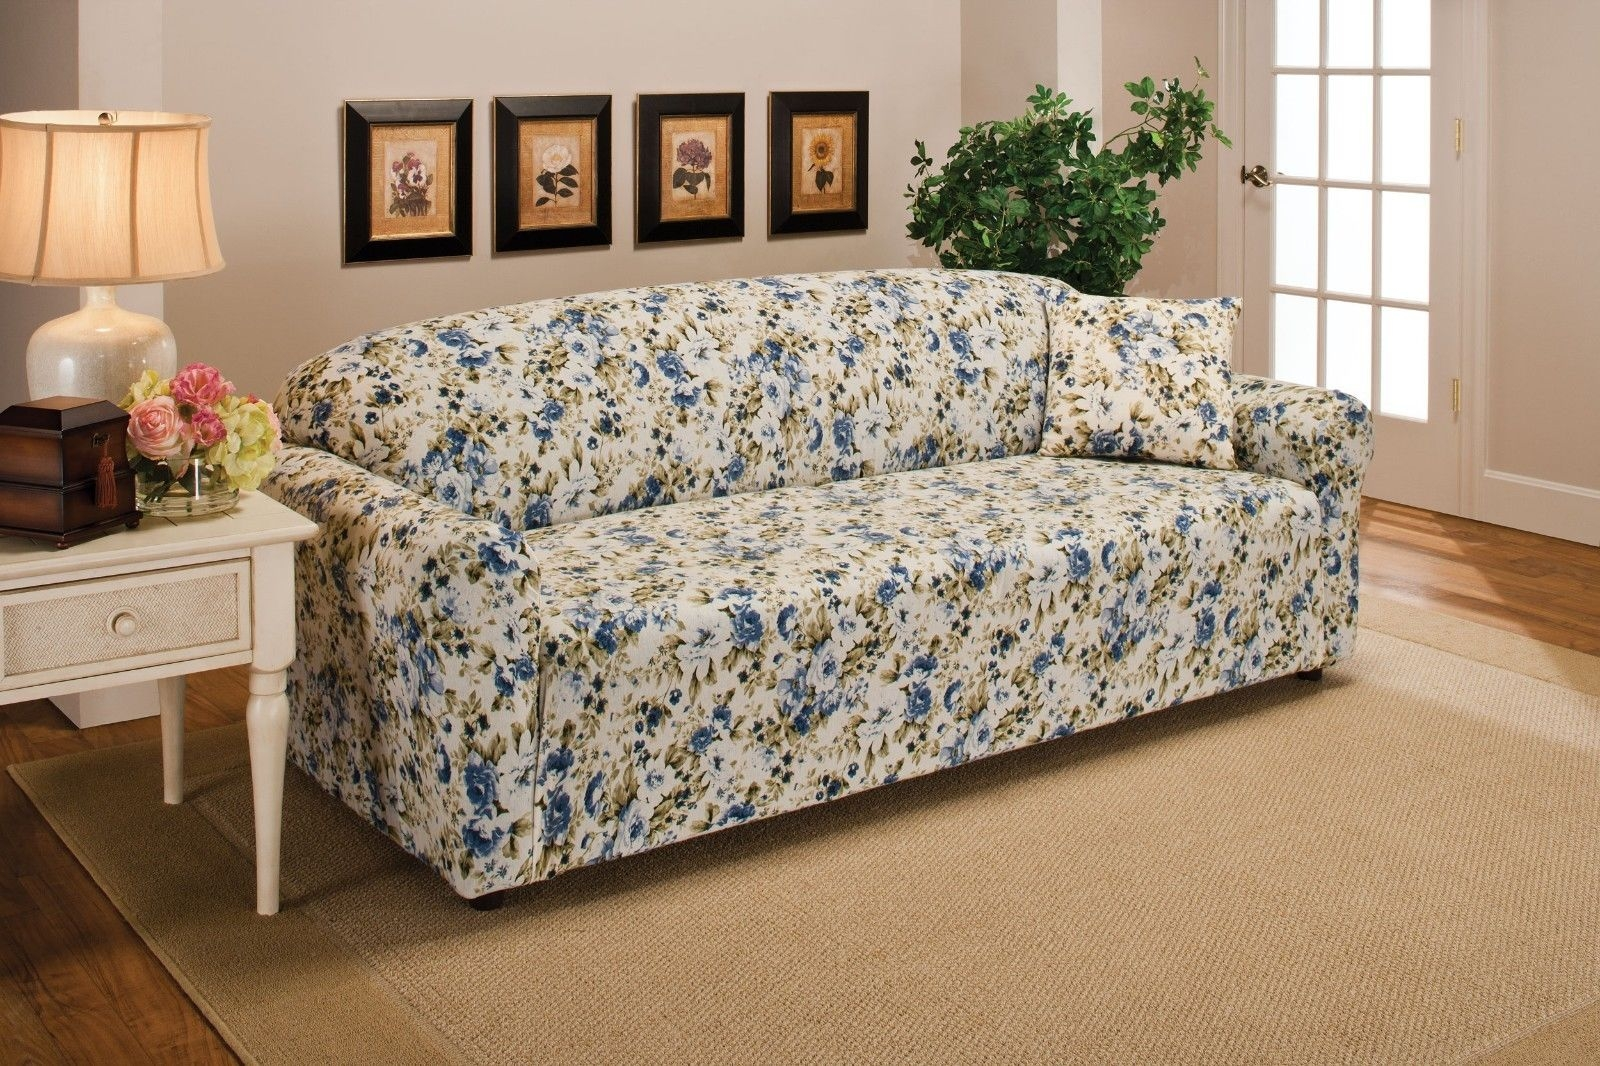 Flower Print Sofa 1970 Floral Sofa Flower Print Couch Suzy Q Regarding Chintz Sofa Beds (Image 12 of 15)